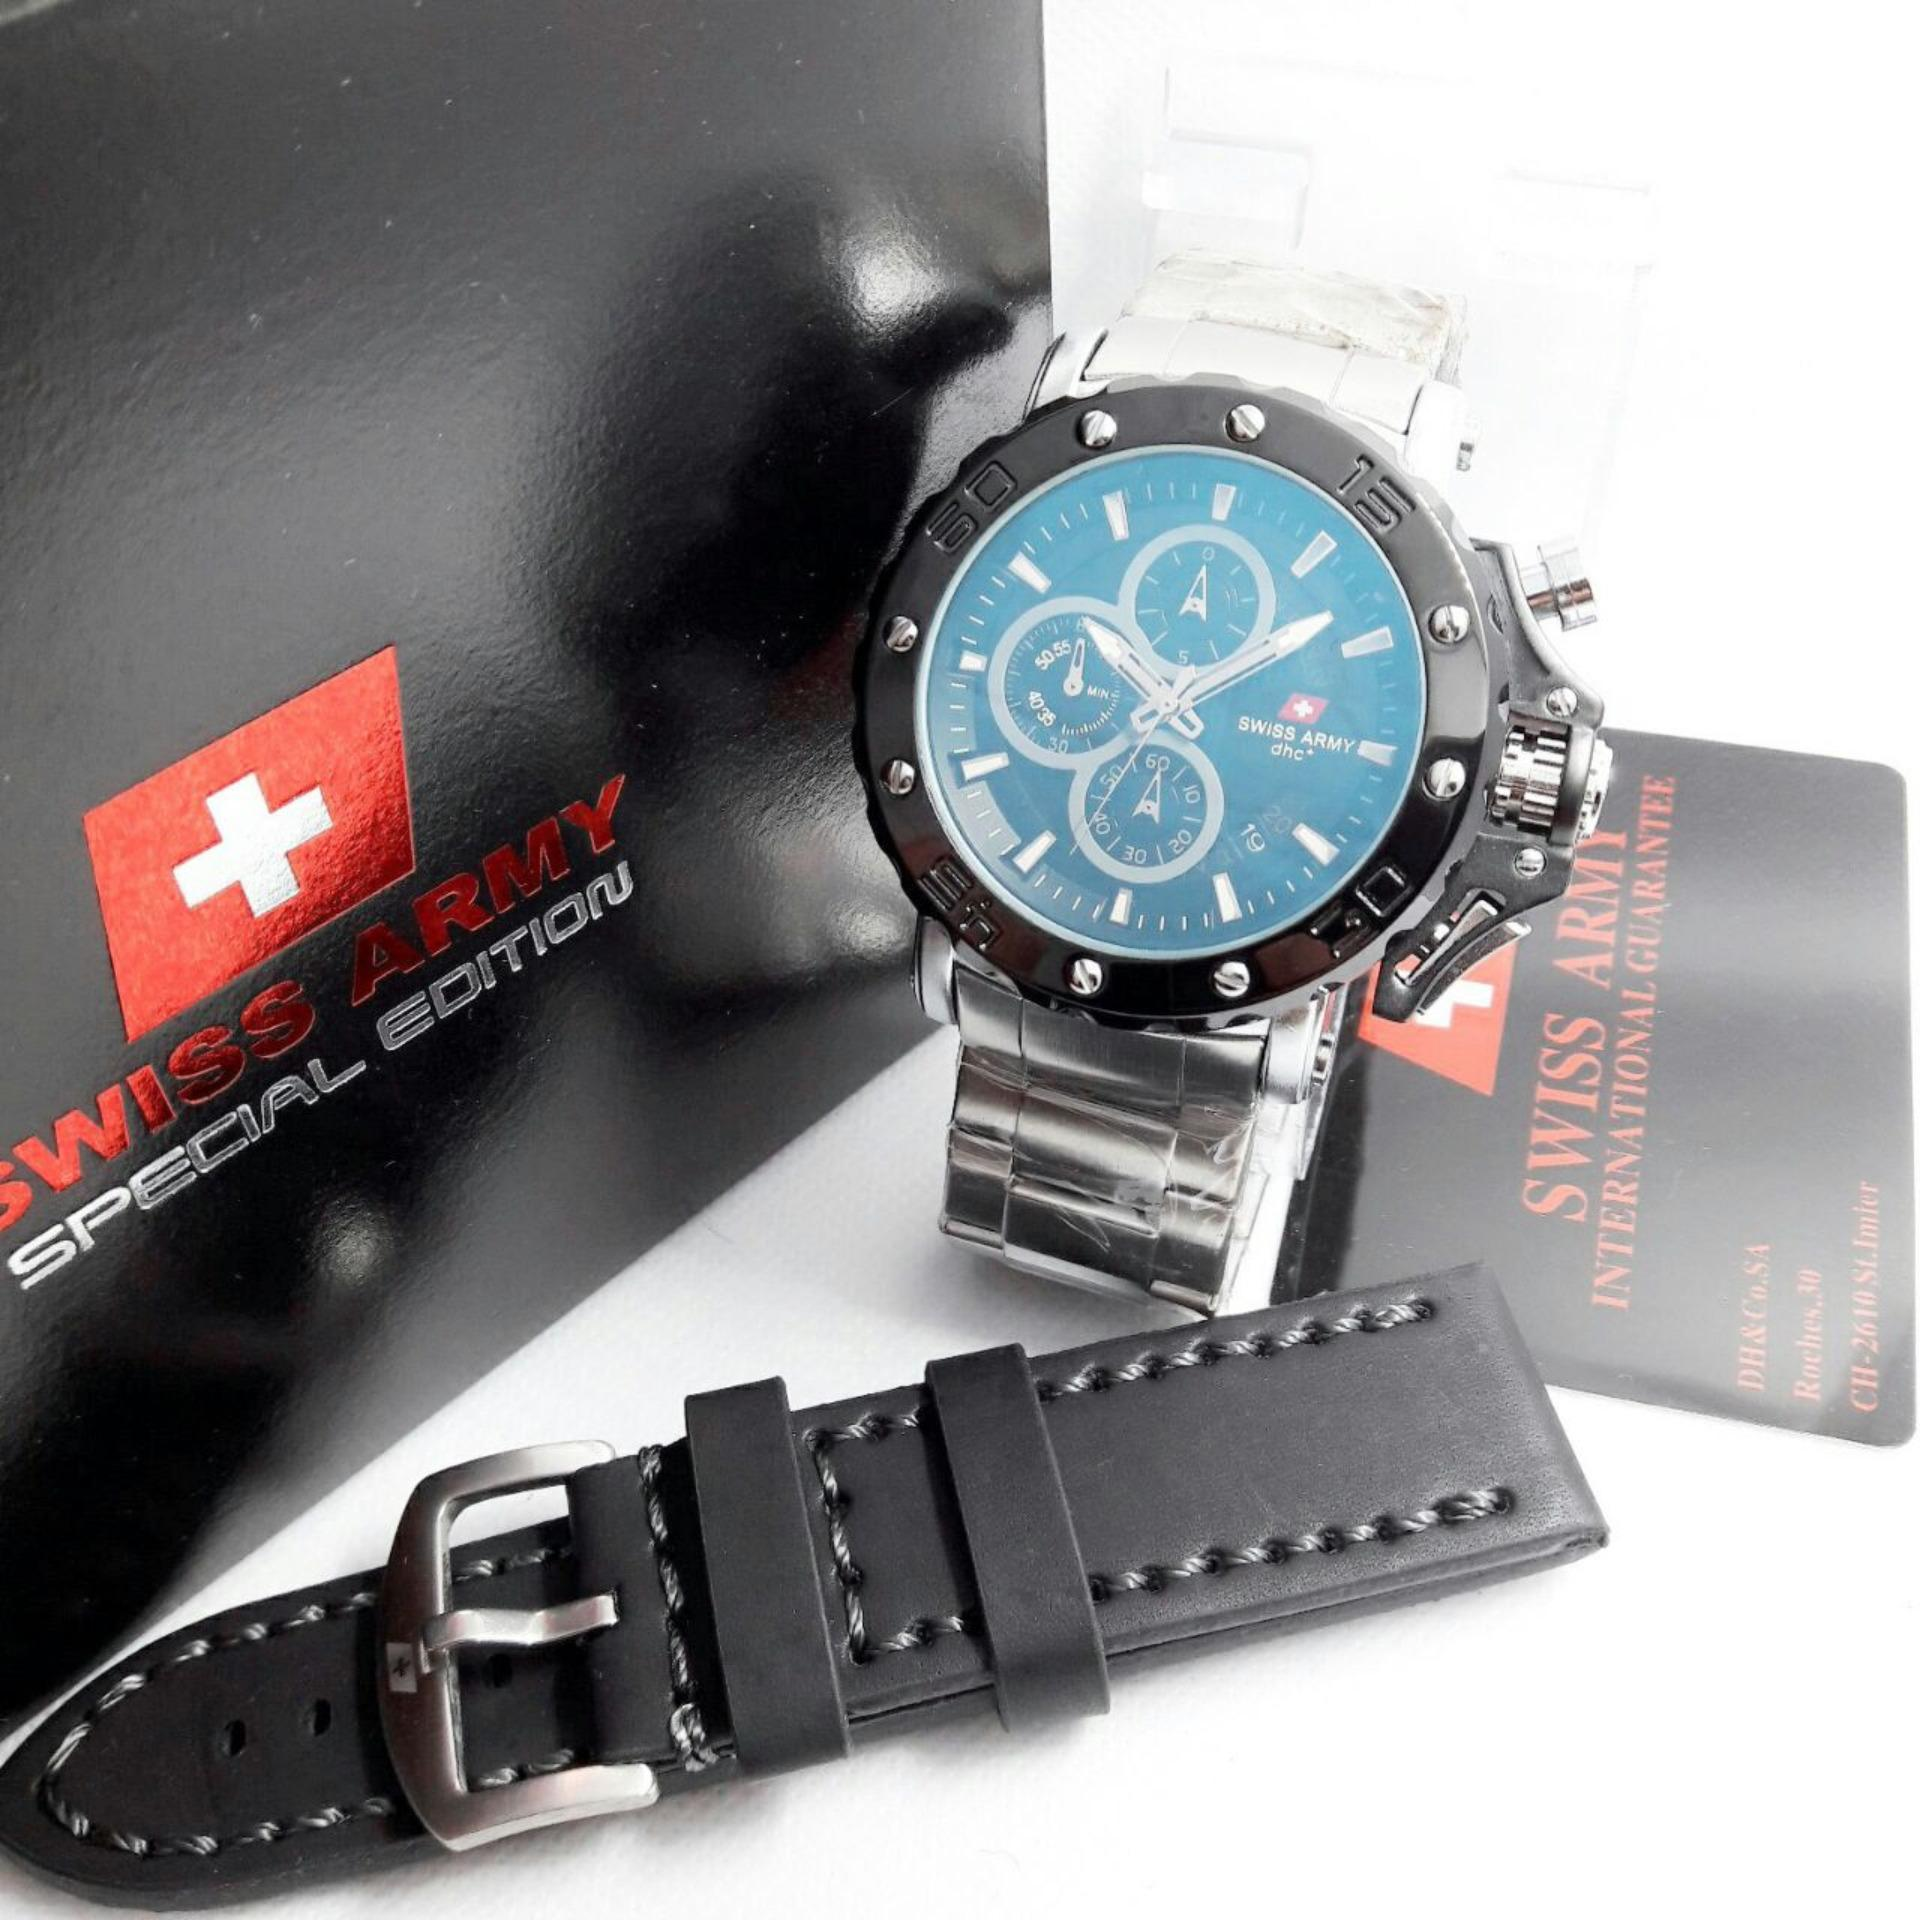 5088 Coup Fb Gld Source Swiss Army Couple Watch Silver Full Stainless Sa. Source ·